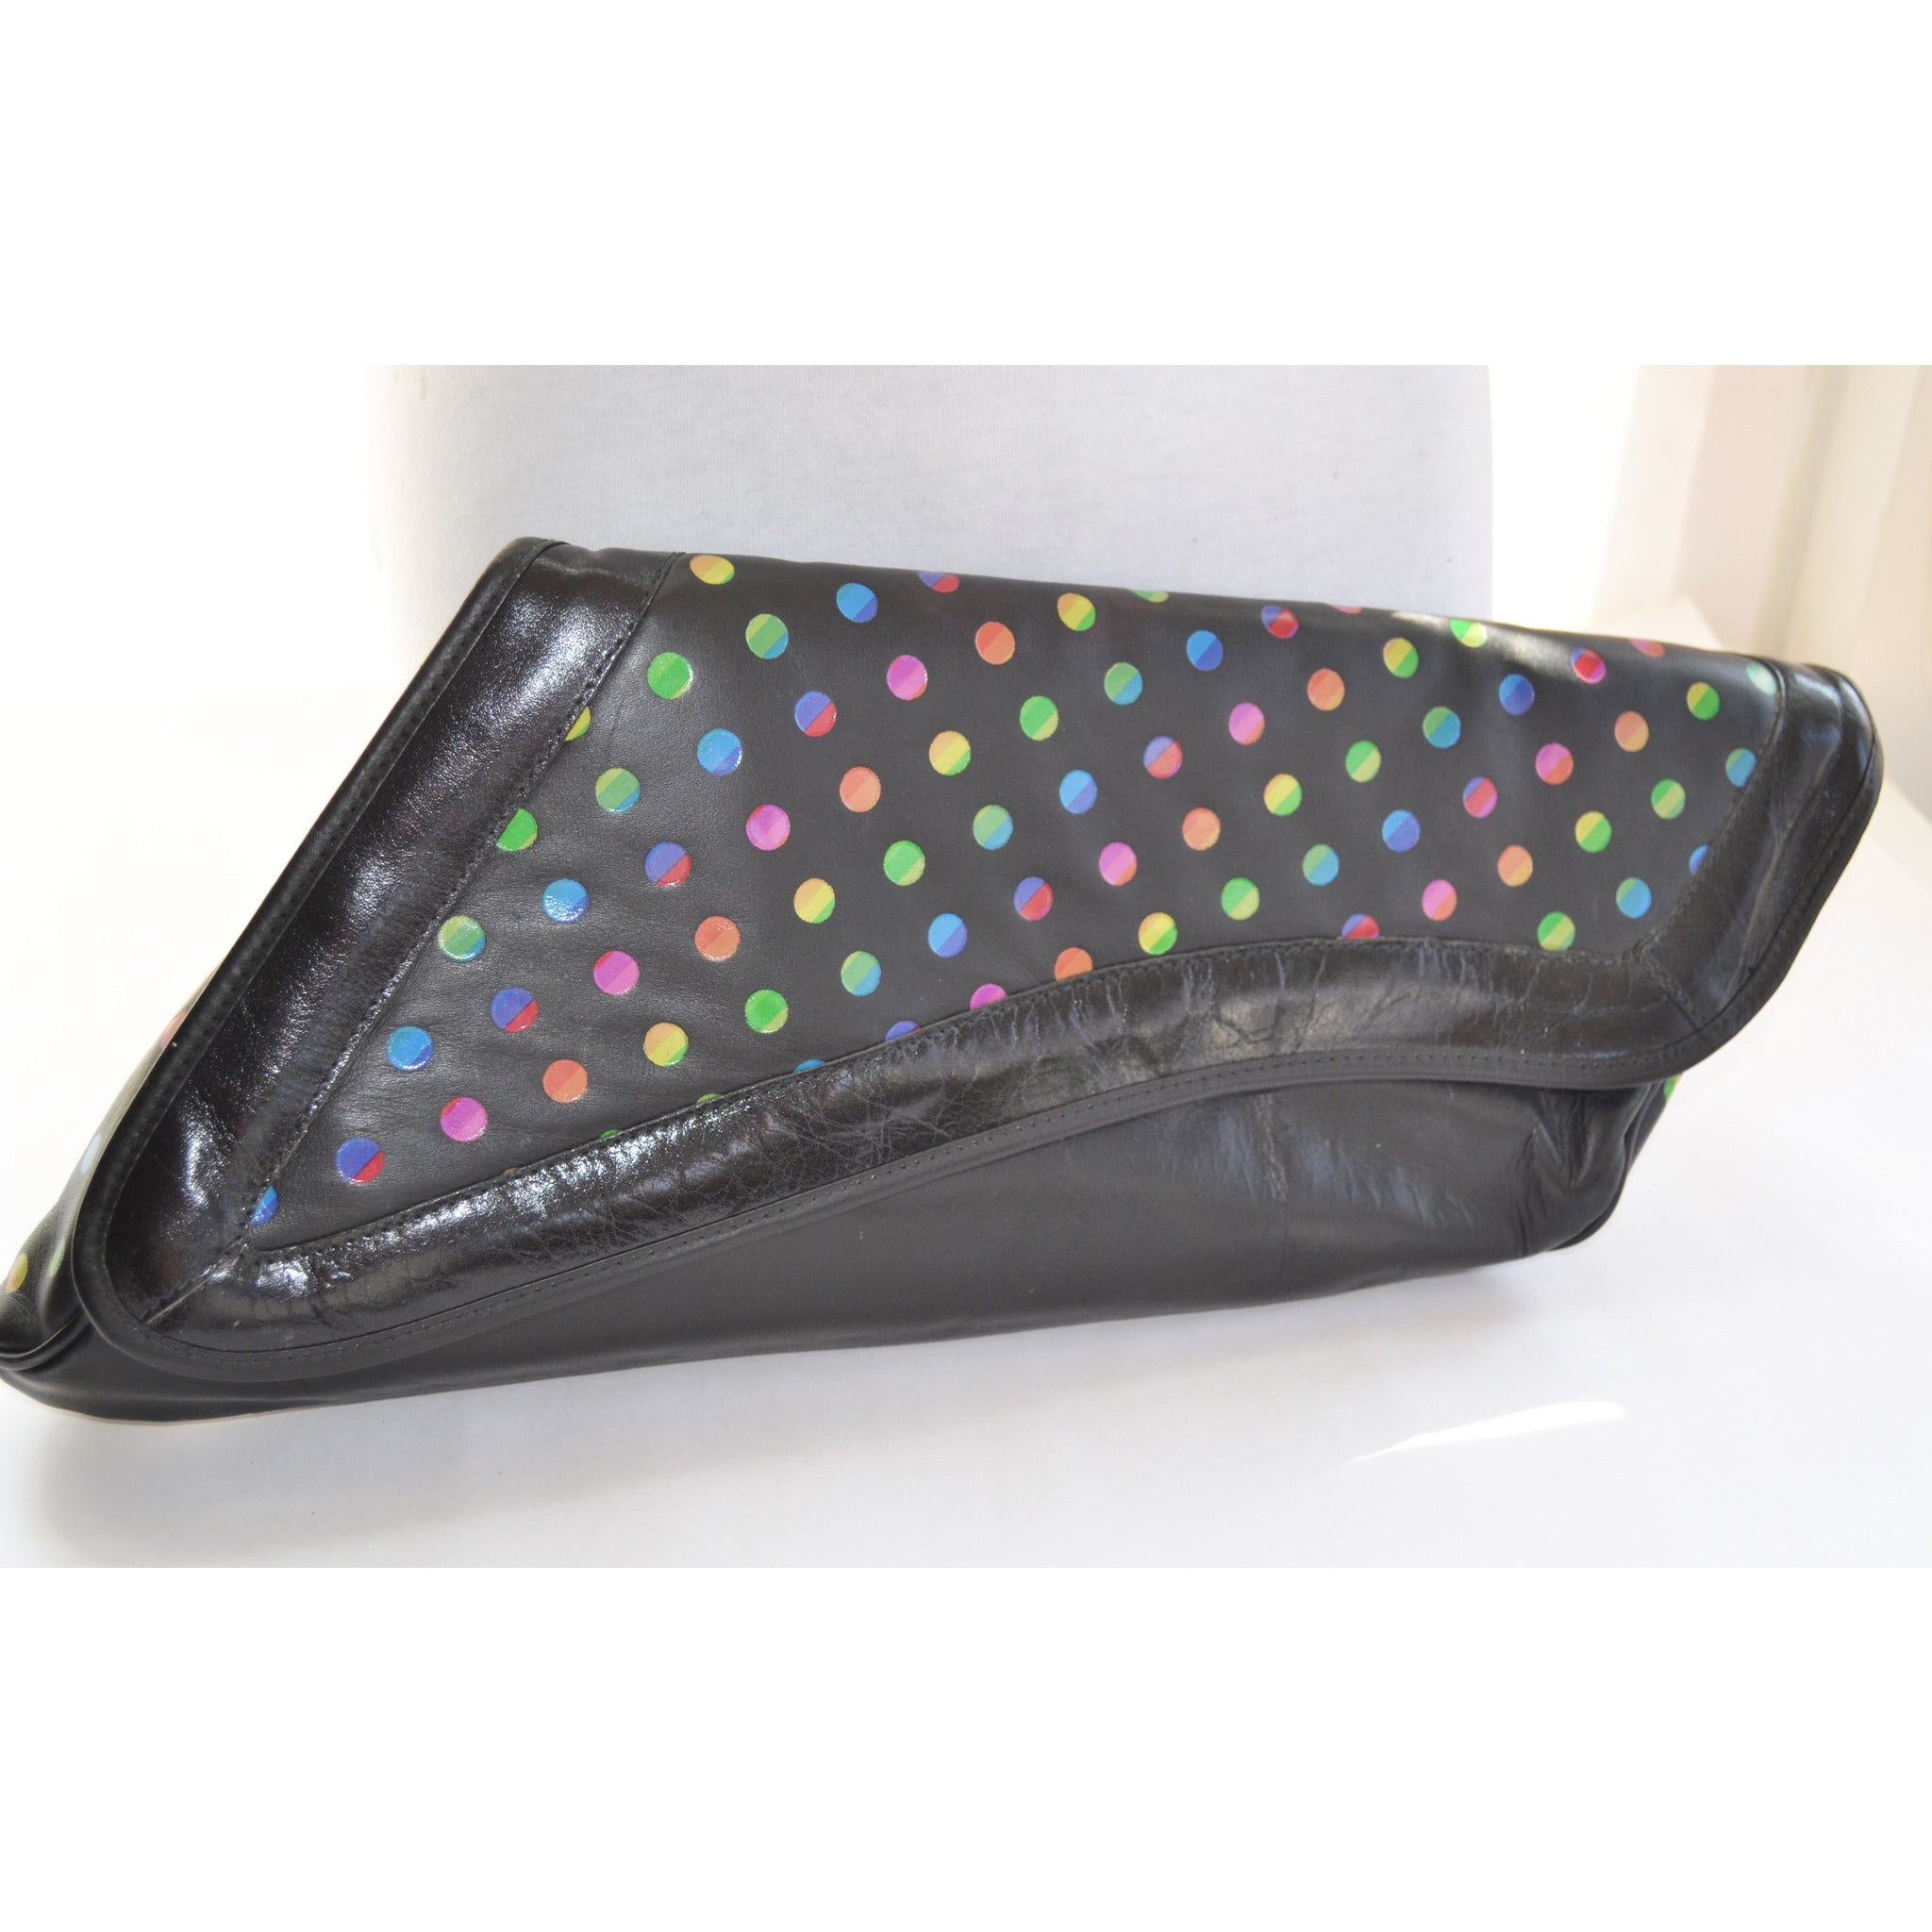 Vintage Black Polka Dot Asymmetrical Leather Clutch Purse